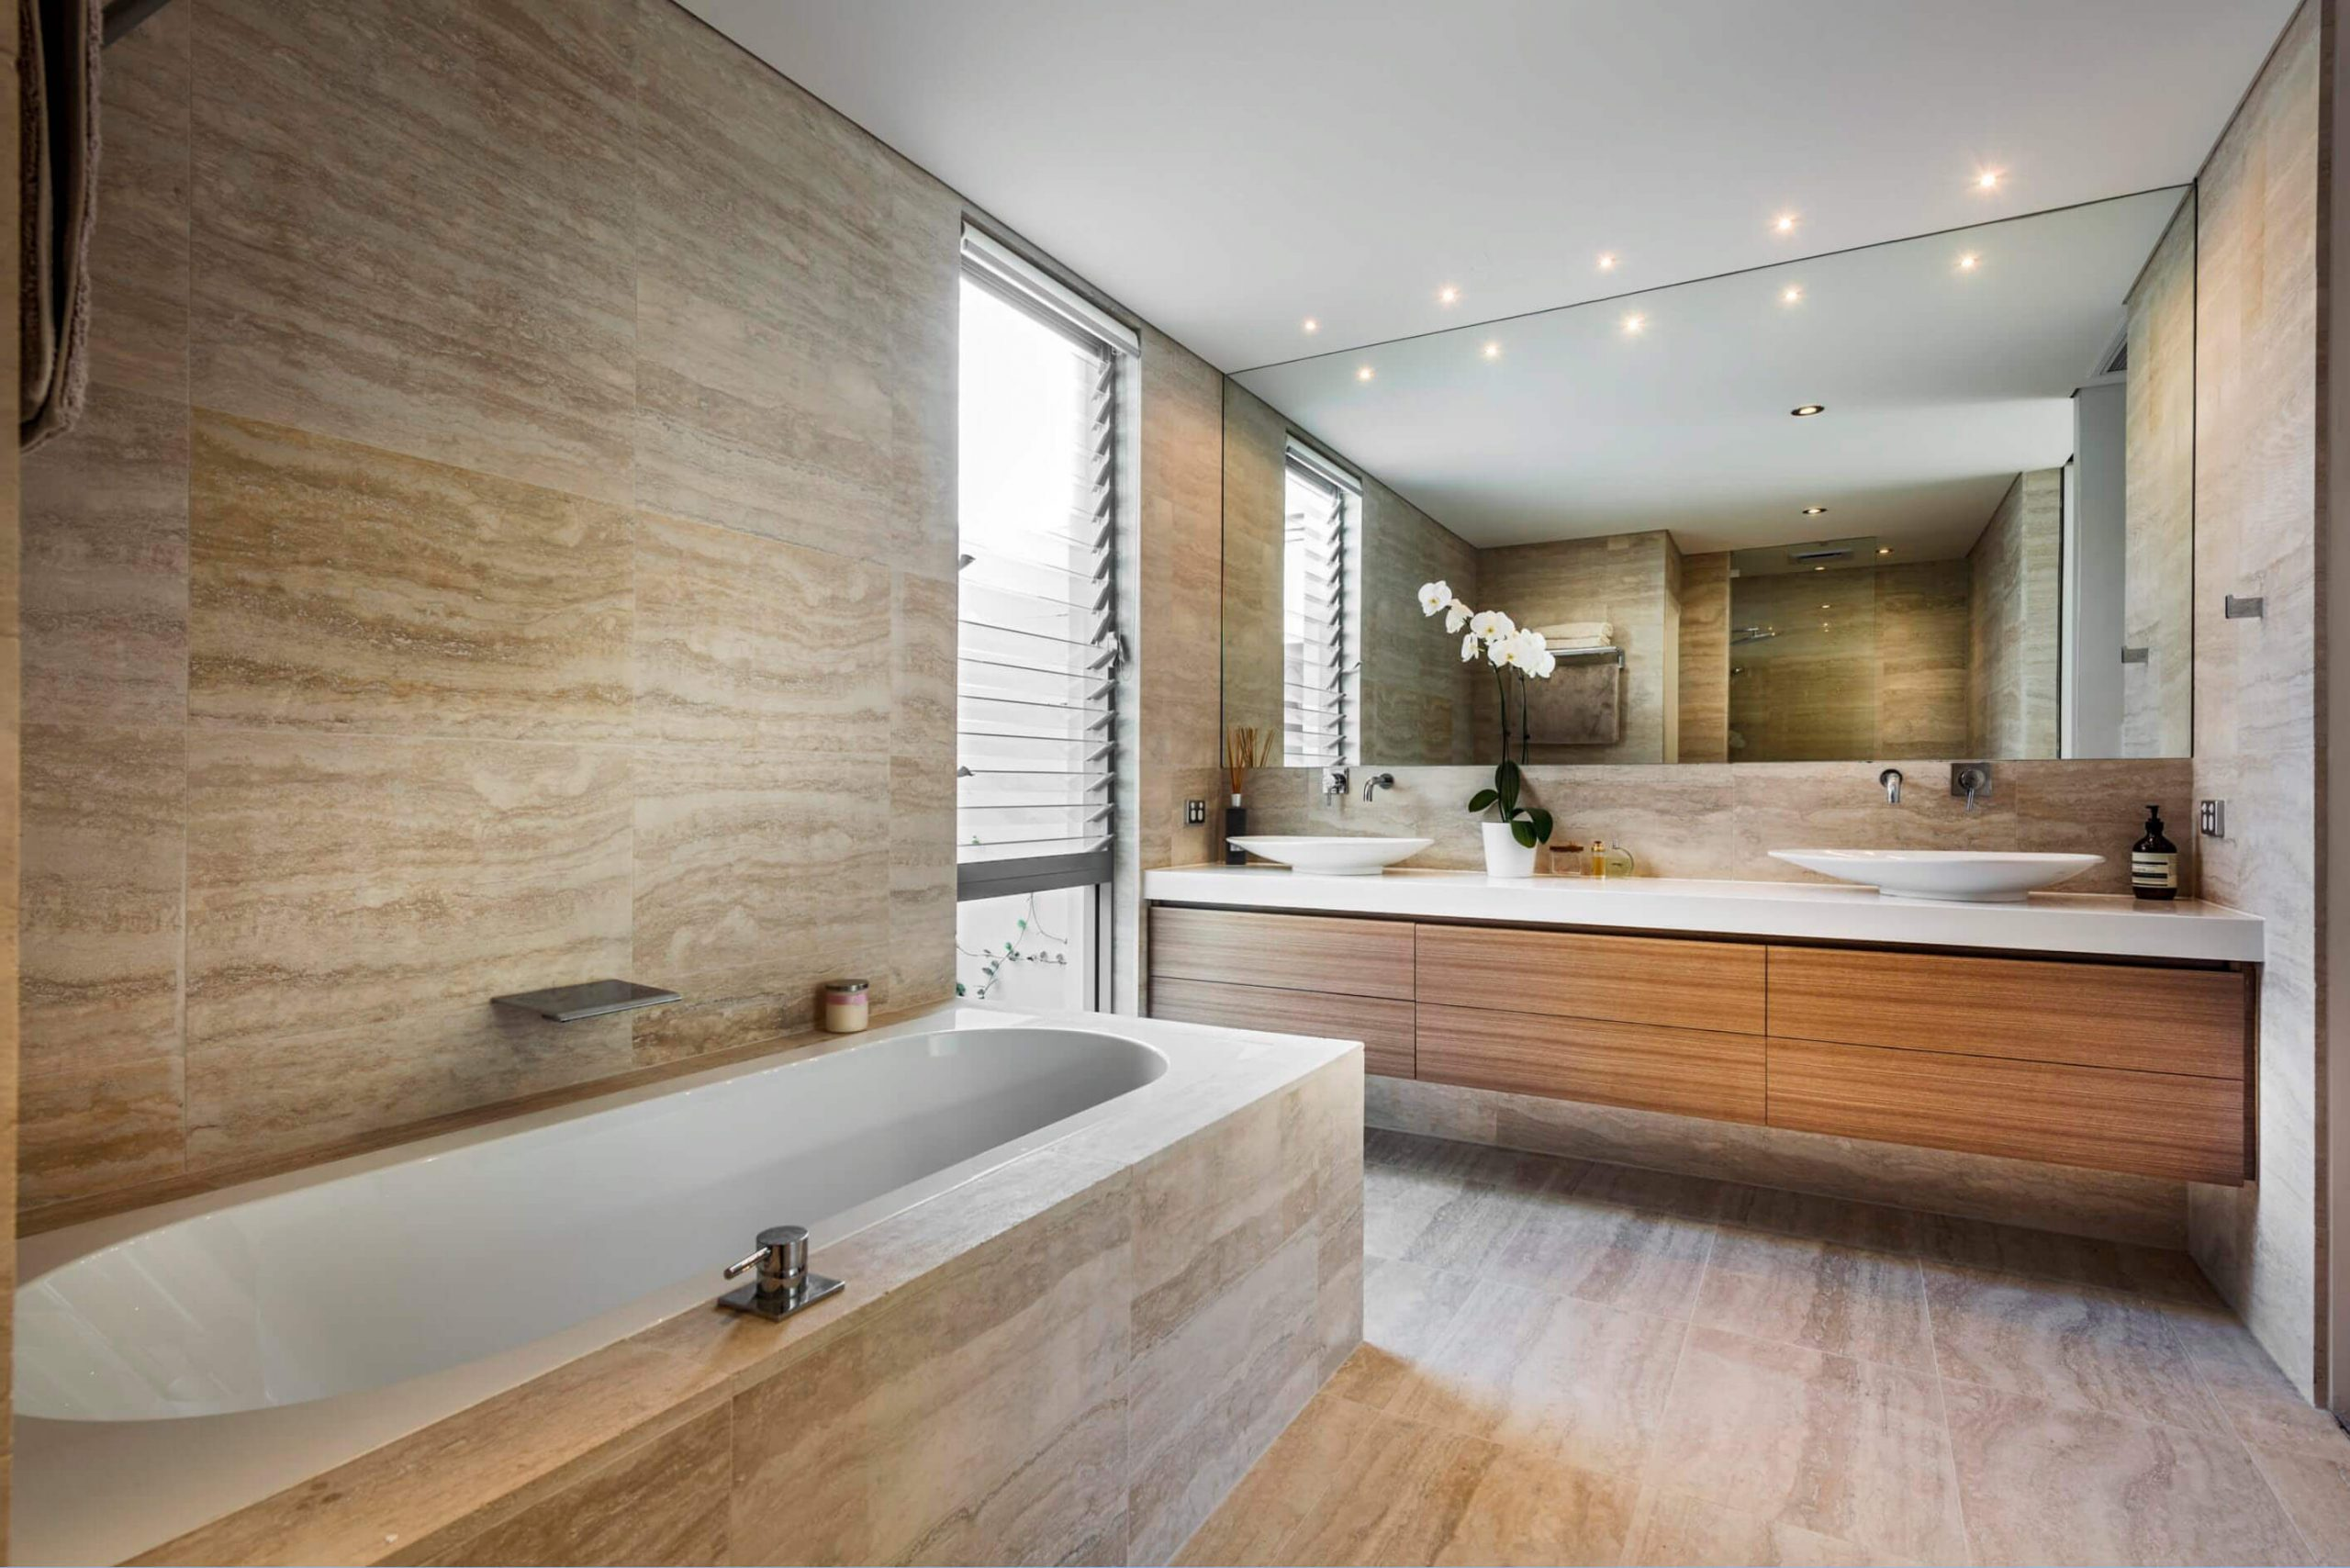 bathtub-refinishing-chicago-bathtub-refinishing-chicago